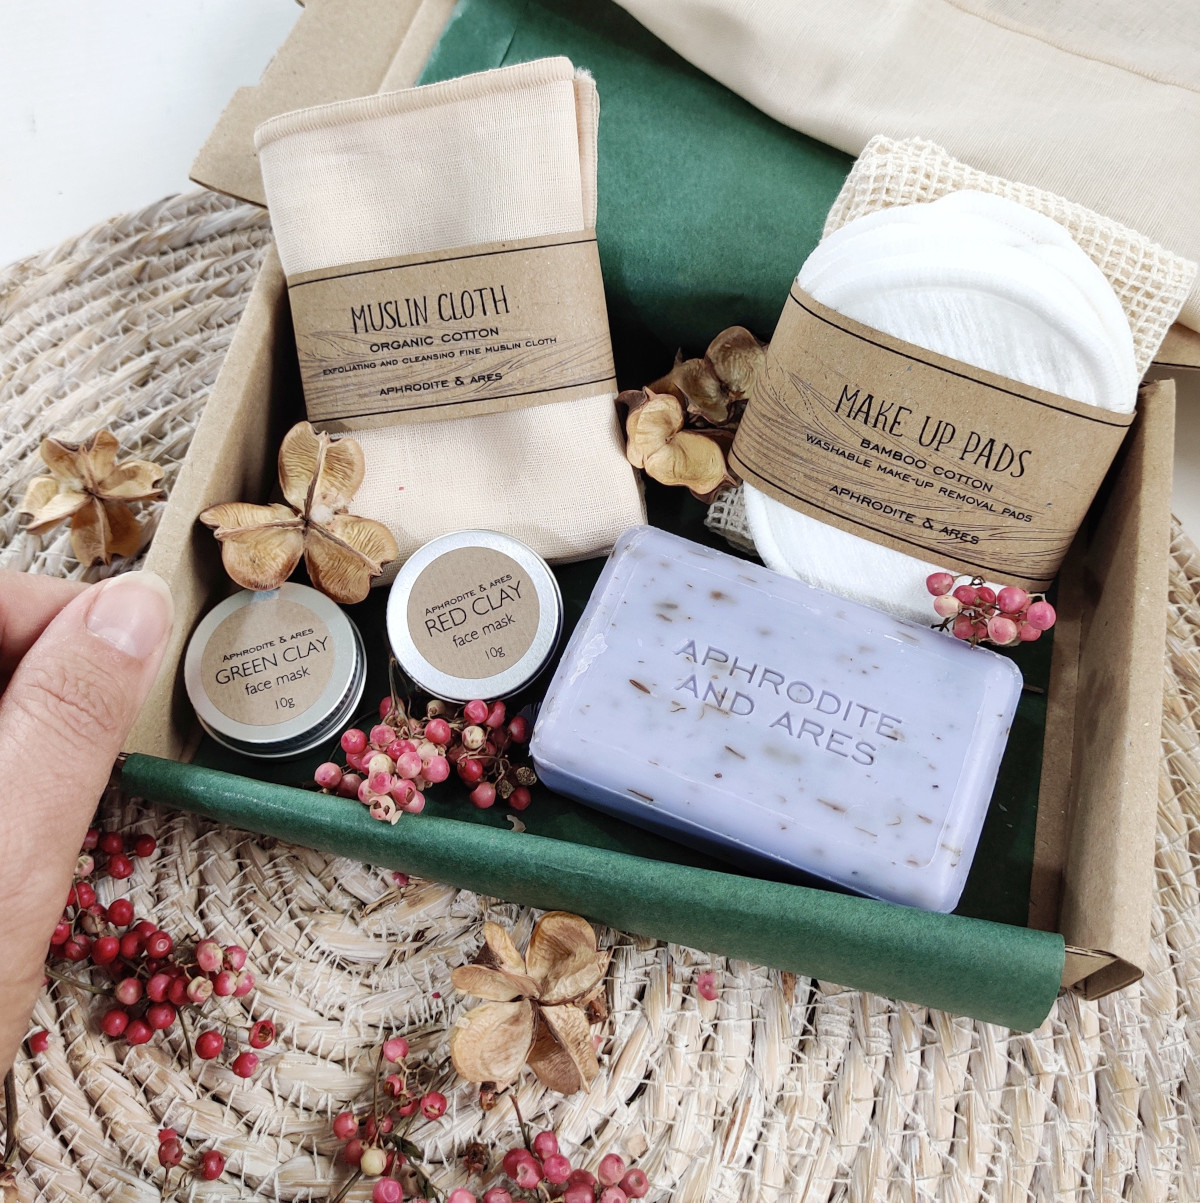 Vegan Beauty Box Letterbox Gift from Ethical Market